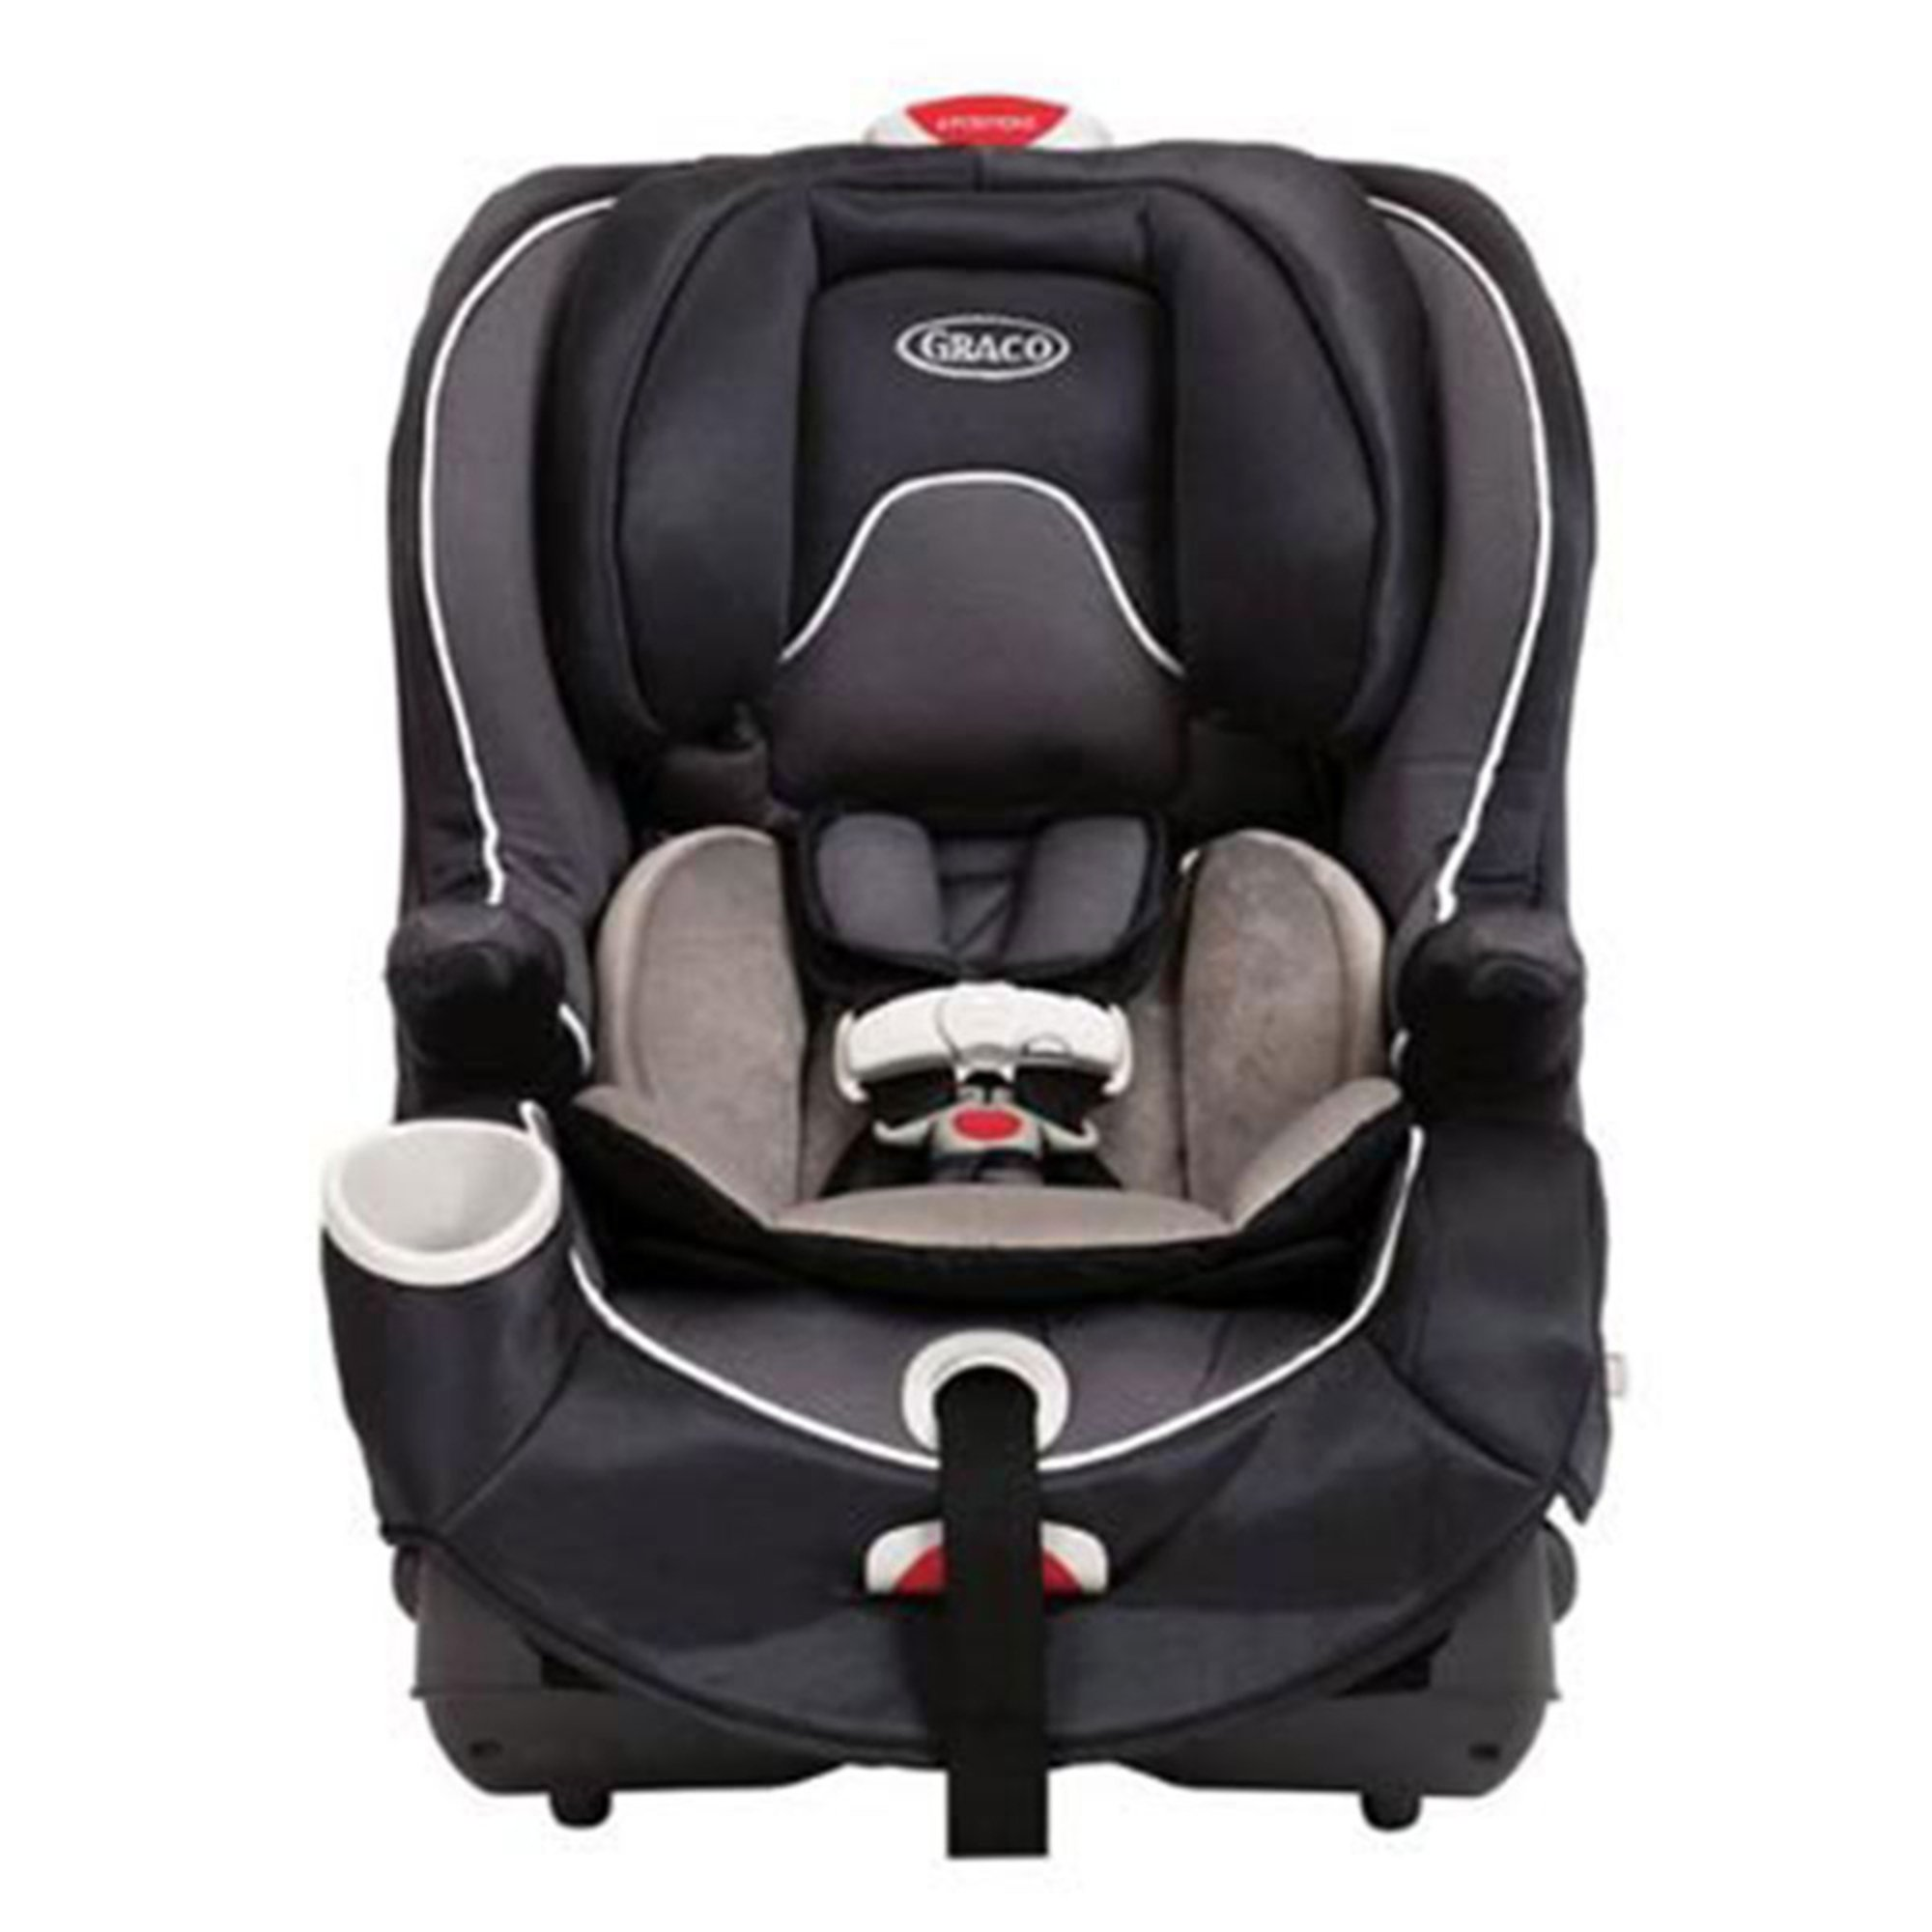 graco smart seat all in one car seat rosen convertible car seats baby kids toys shop. Black Bedroom Furniture Sets. Home Design Ideas